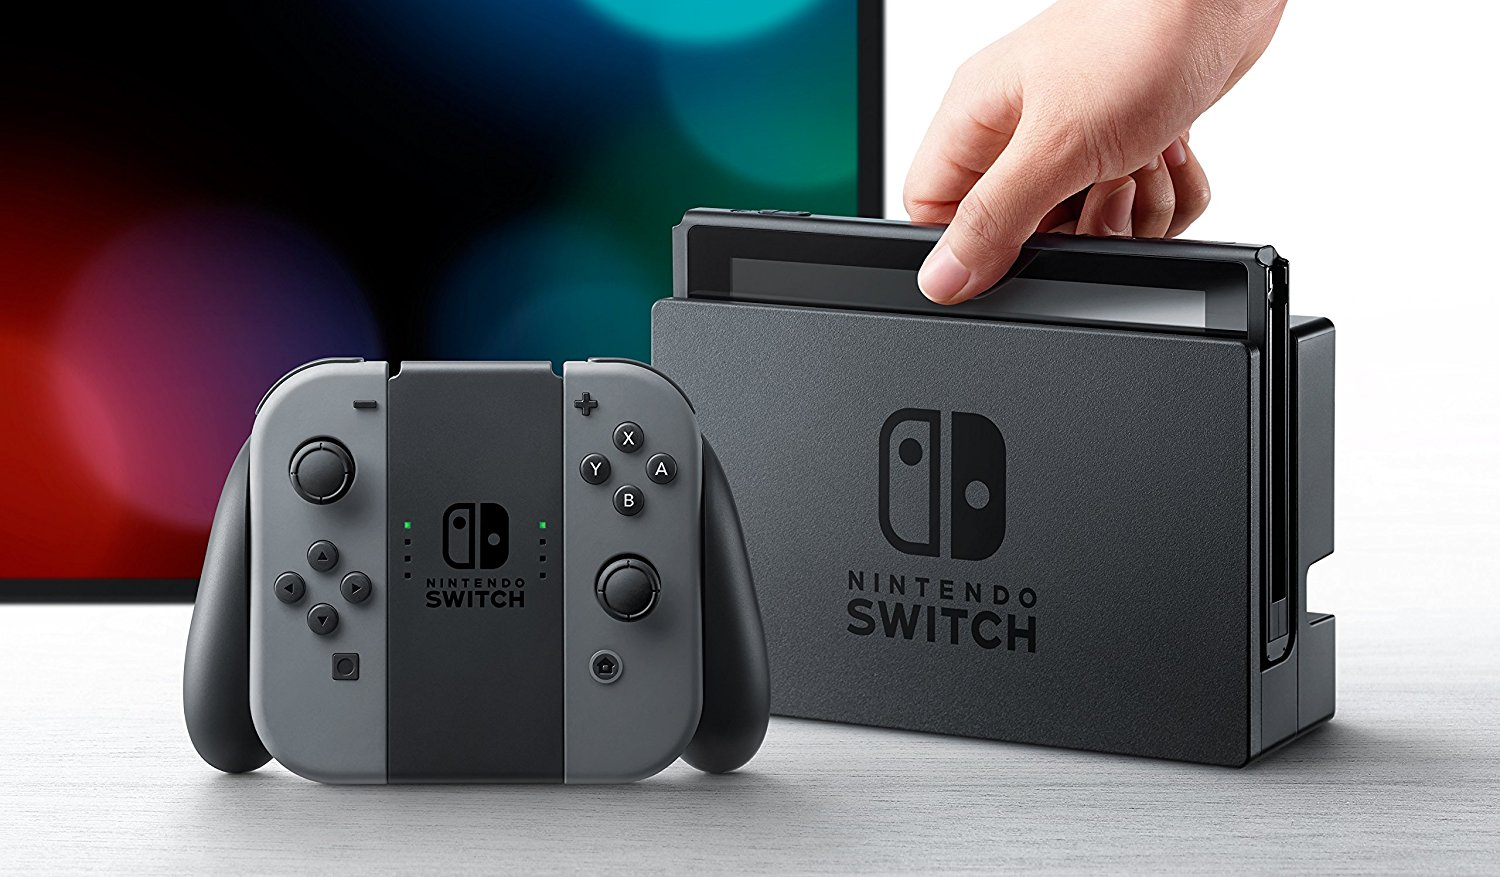 Nintendo Switch for Limited Run games announced